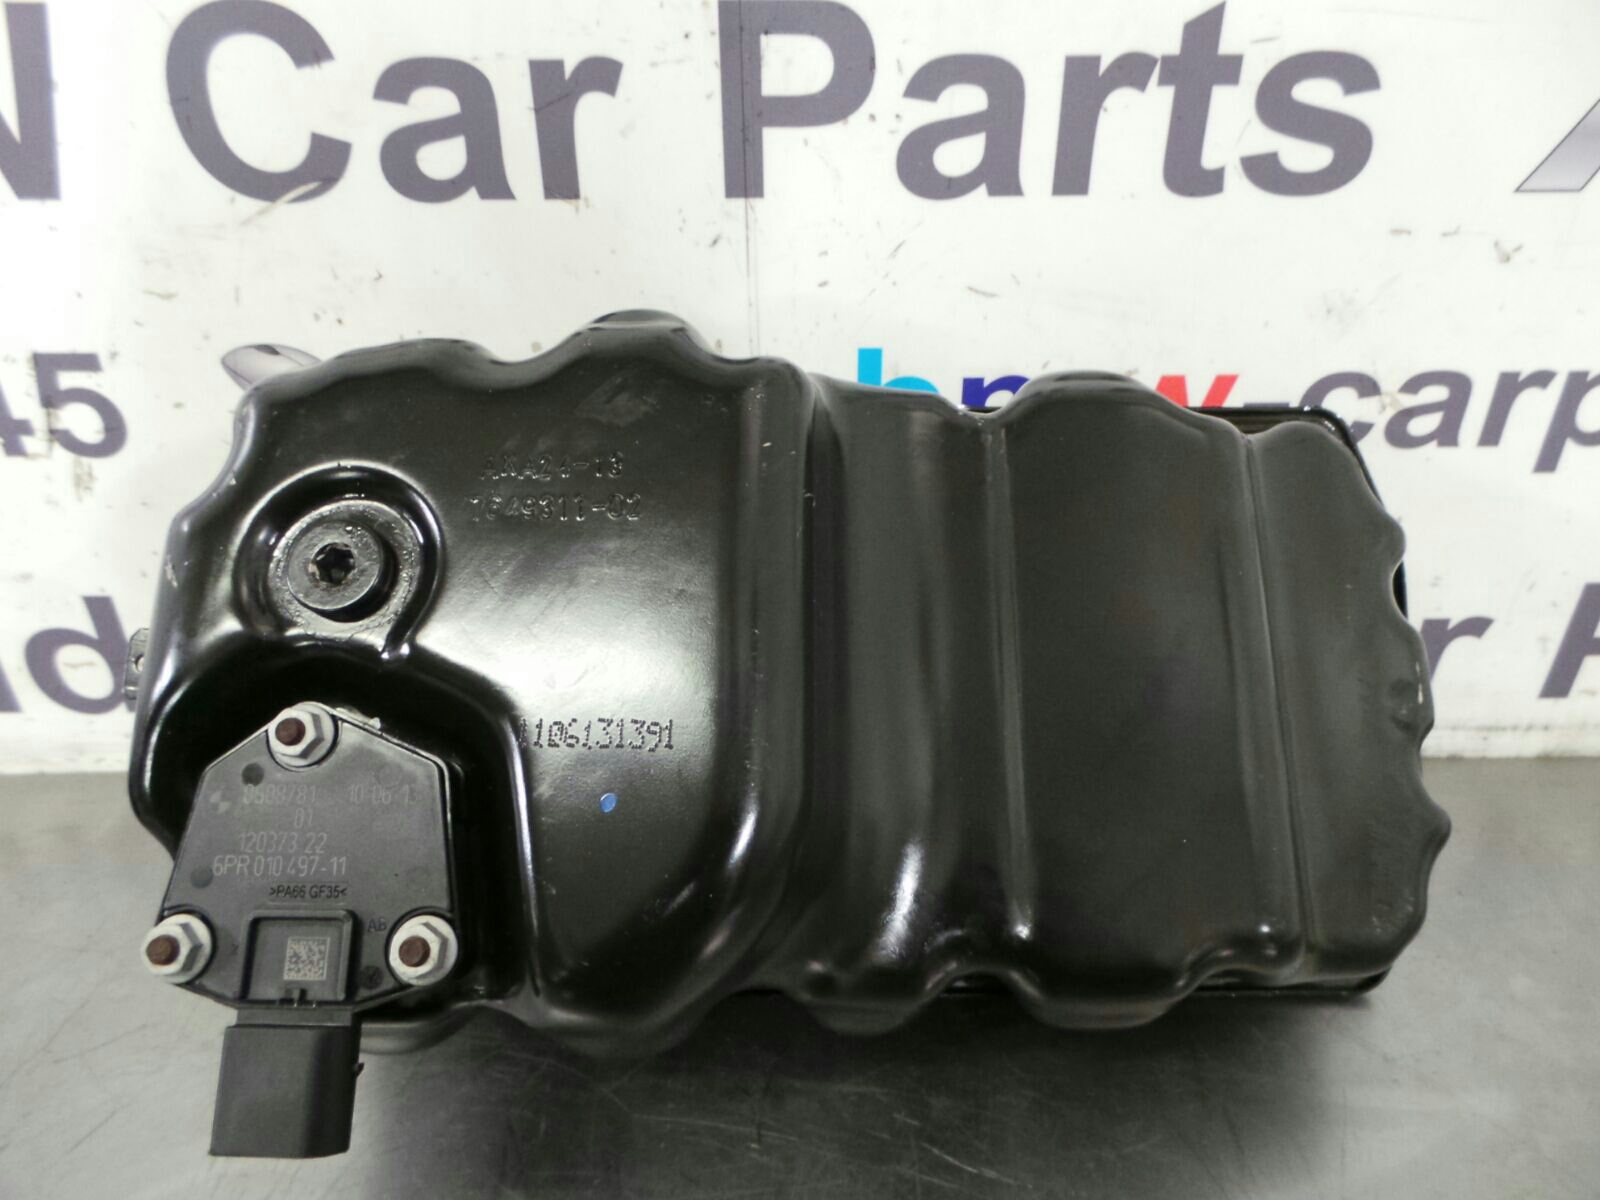 Sell car spare parts online 11